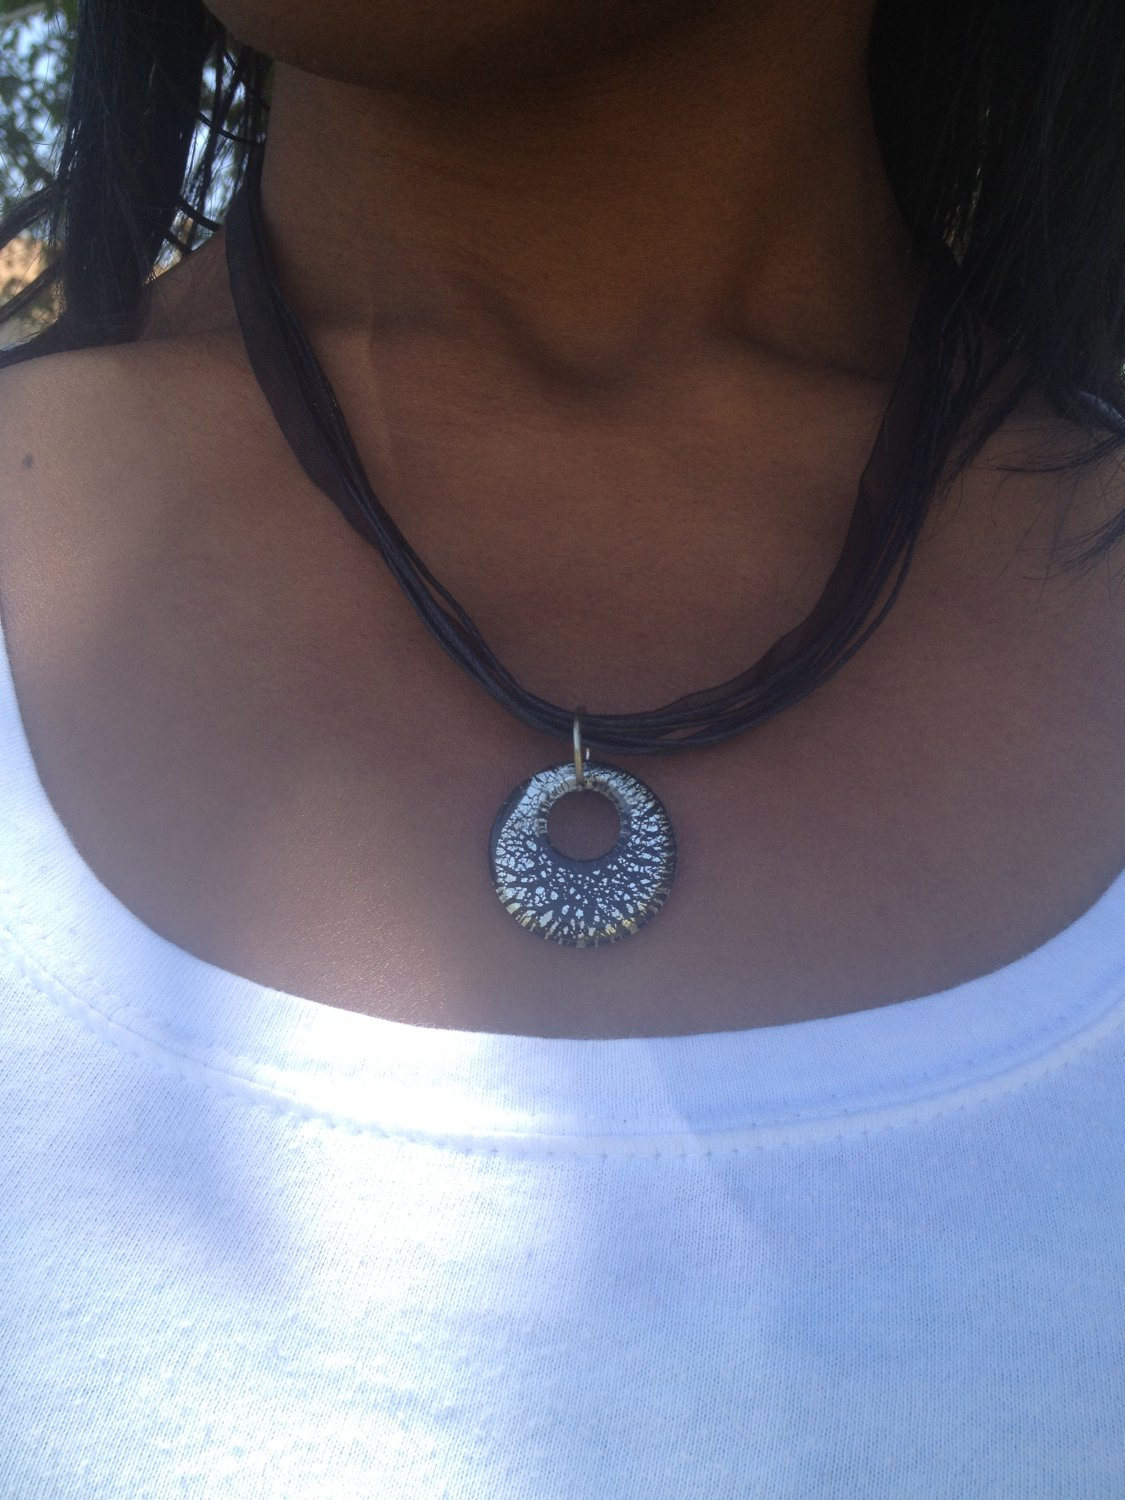 Black necklace with glass pendant